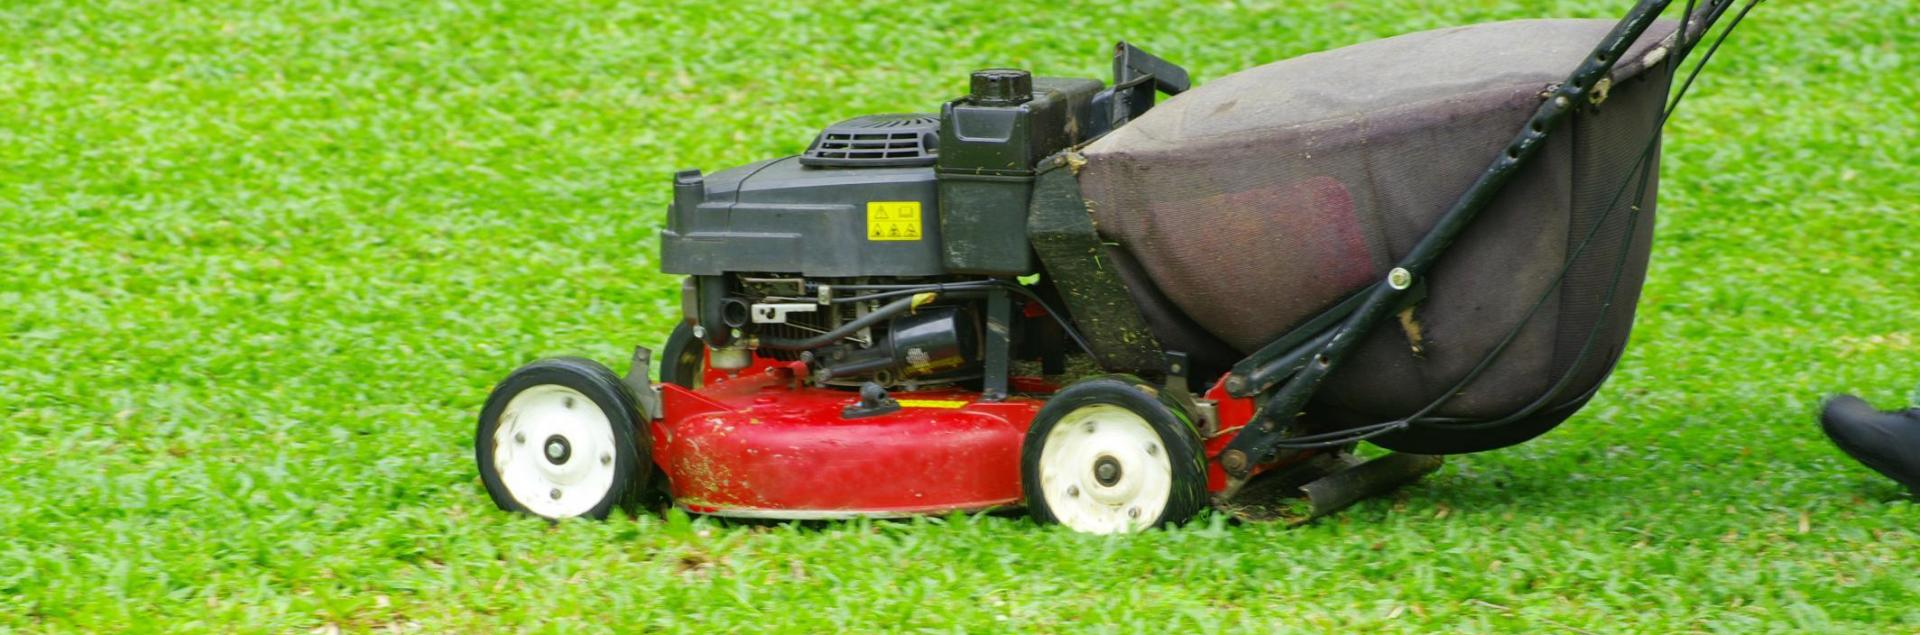 <h2 style='color:#FFFFFF !important;                                              '>In need of lawn care?</h2>                                             <span class='slideDesc'>We can mow, landscape and provide a full range of services when it comes to keeping your y</span>